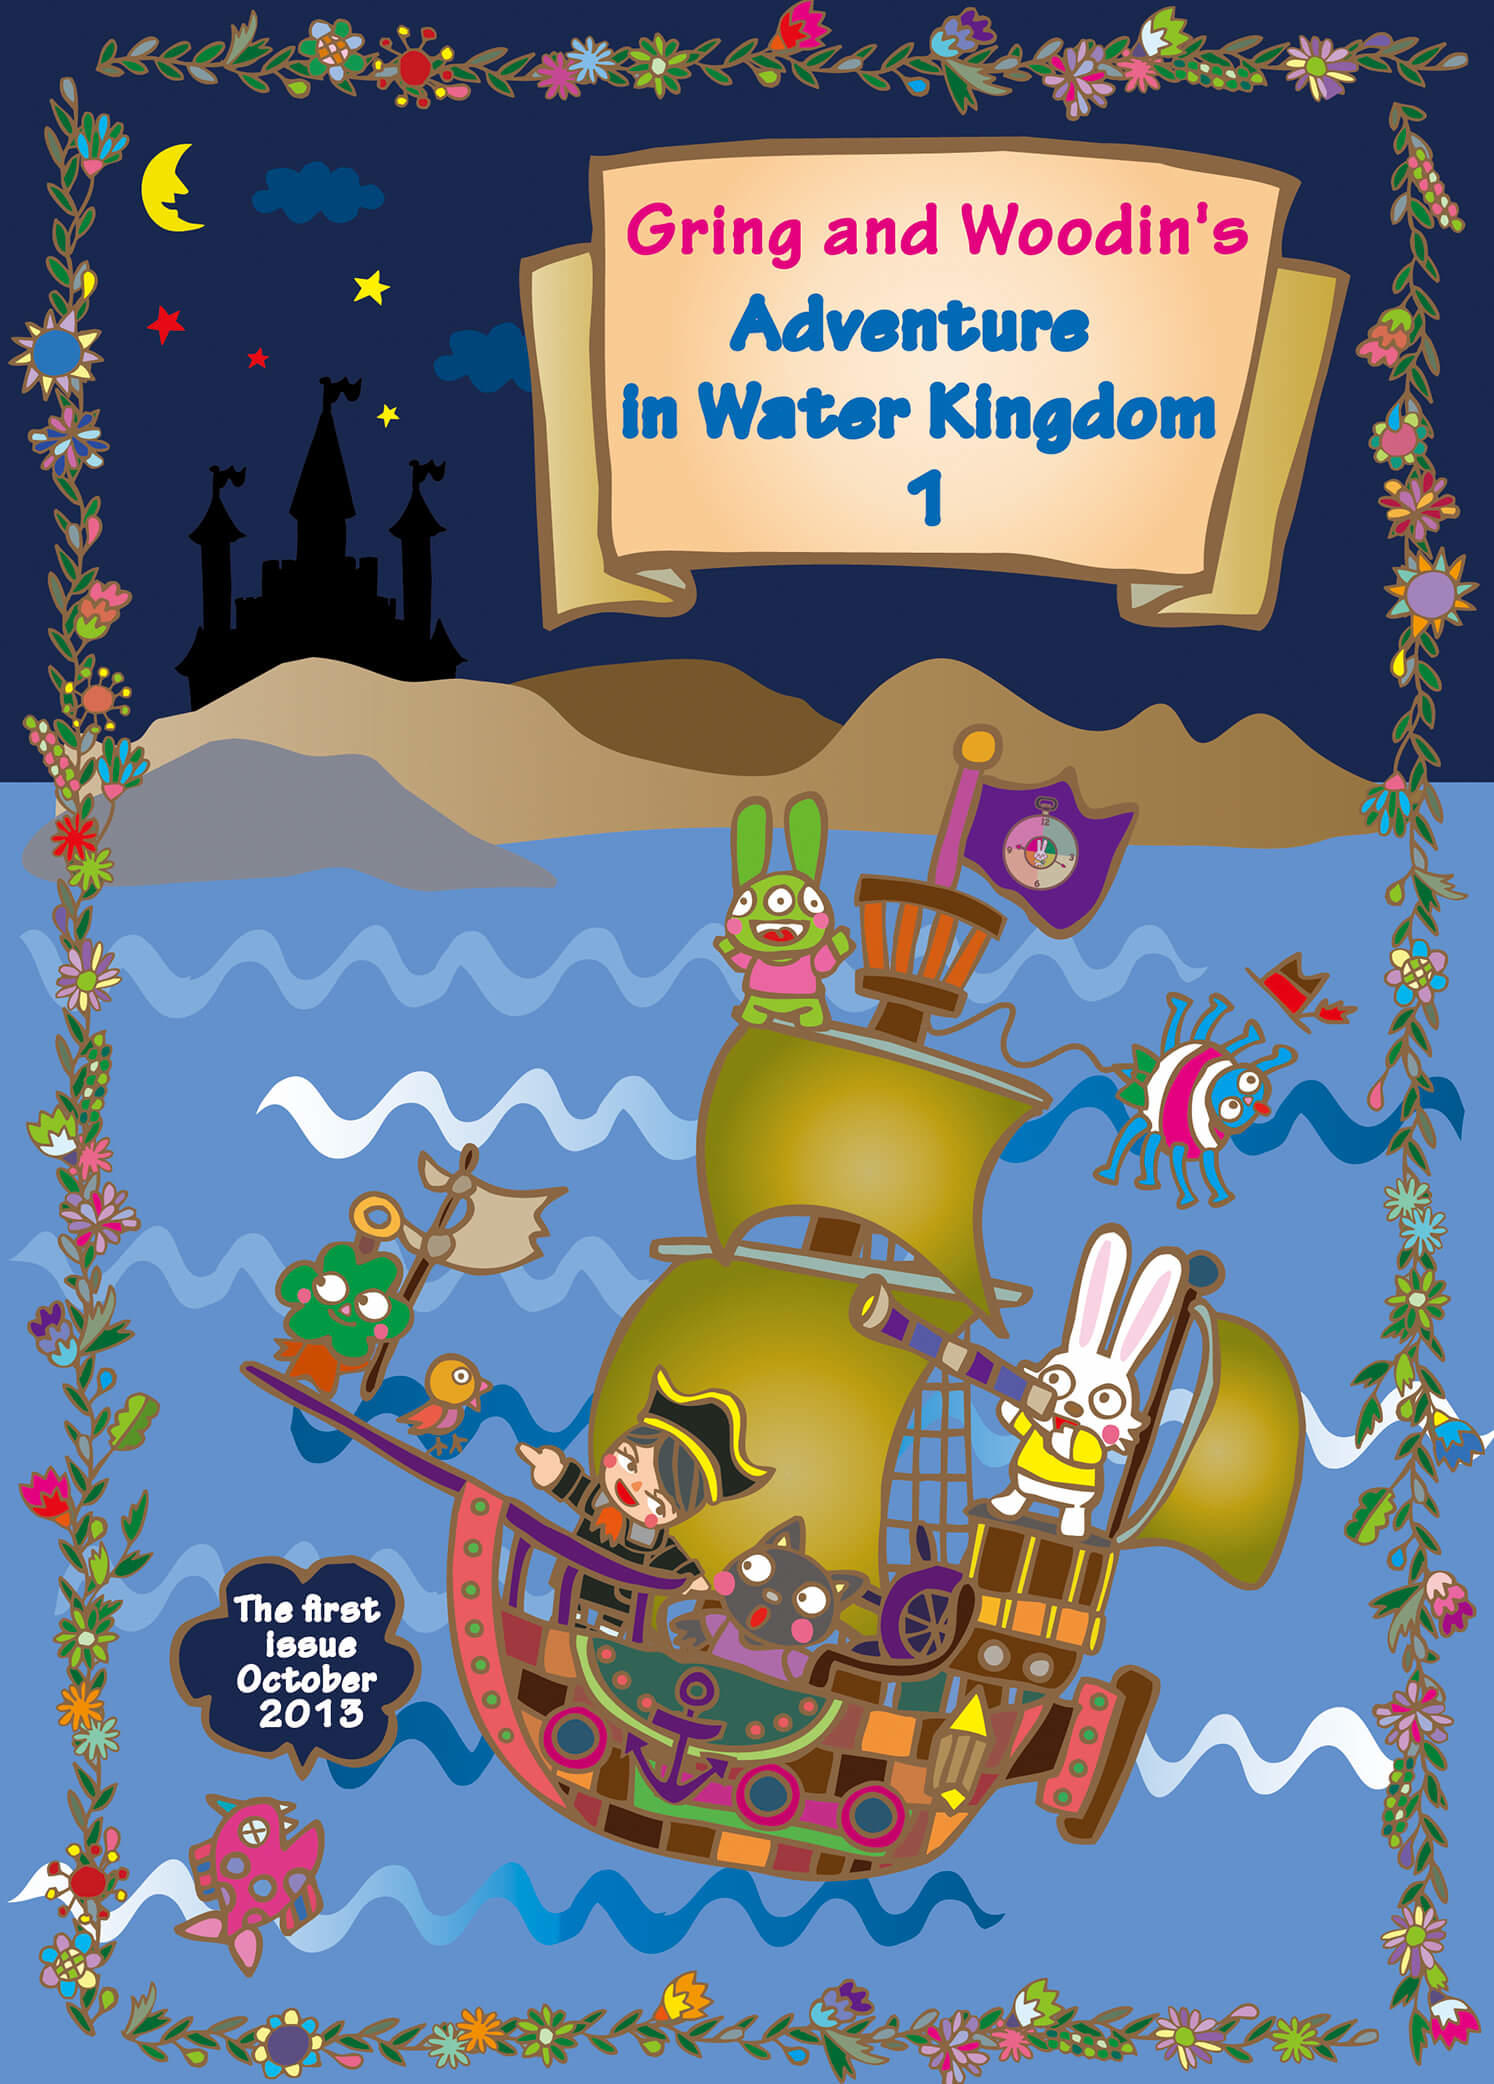 Gring and Woodin's Adventure in Water Kingdom